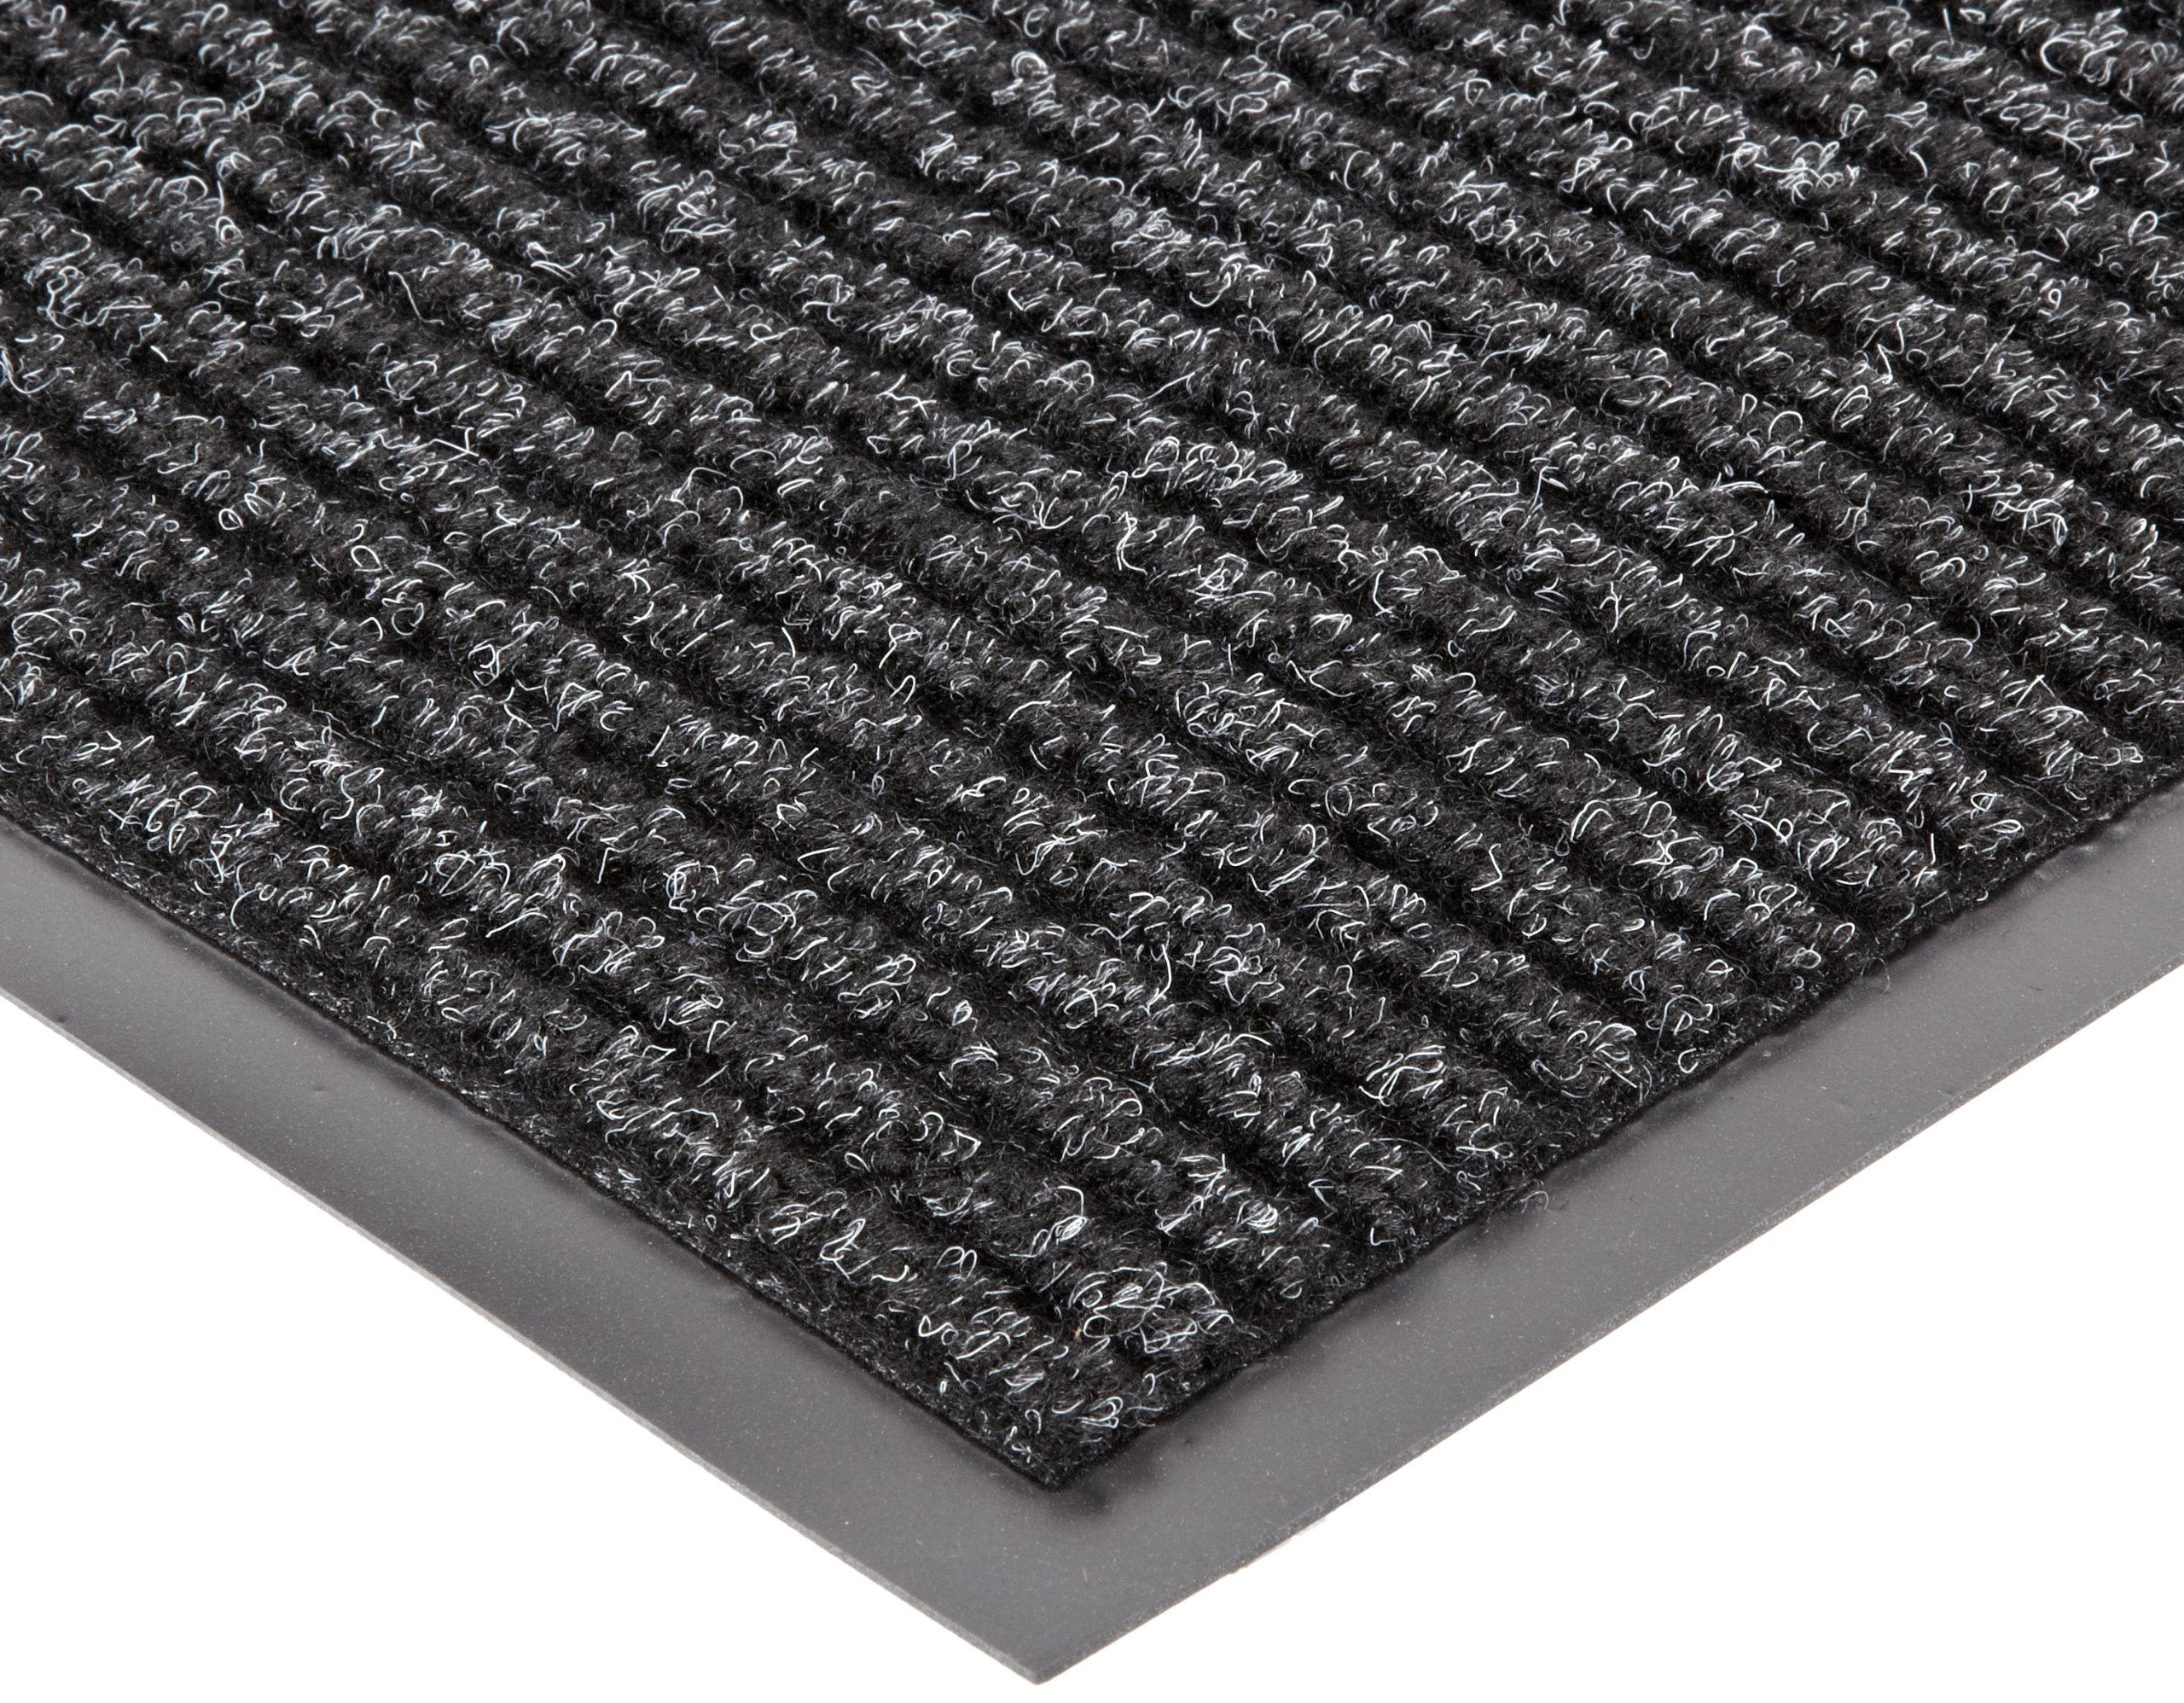 NoTrax 117 Heritage Rib Entrance Mat, for Lobbies and Indoor Entranceways, 4' Width x 6' Length x 3/8'' Thickness, Charcoal